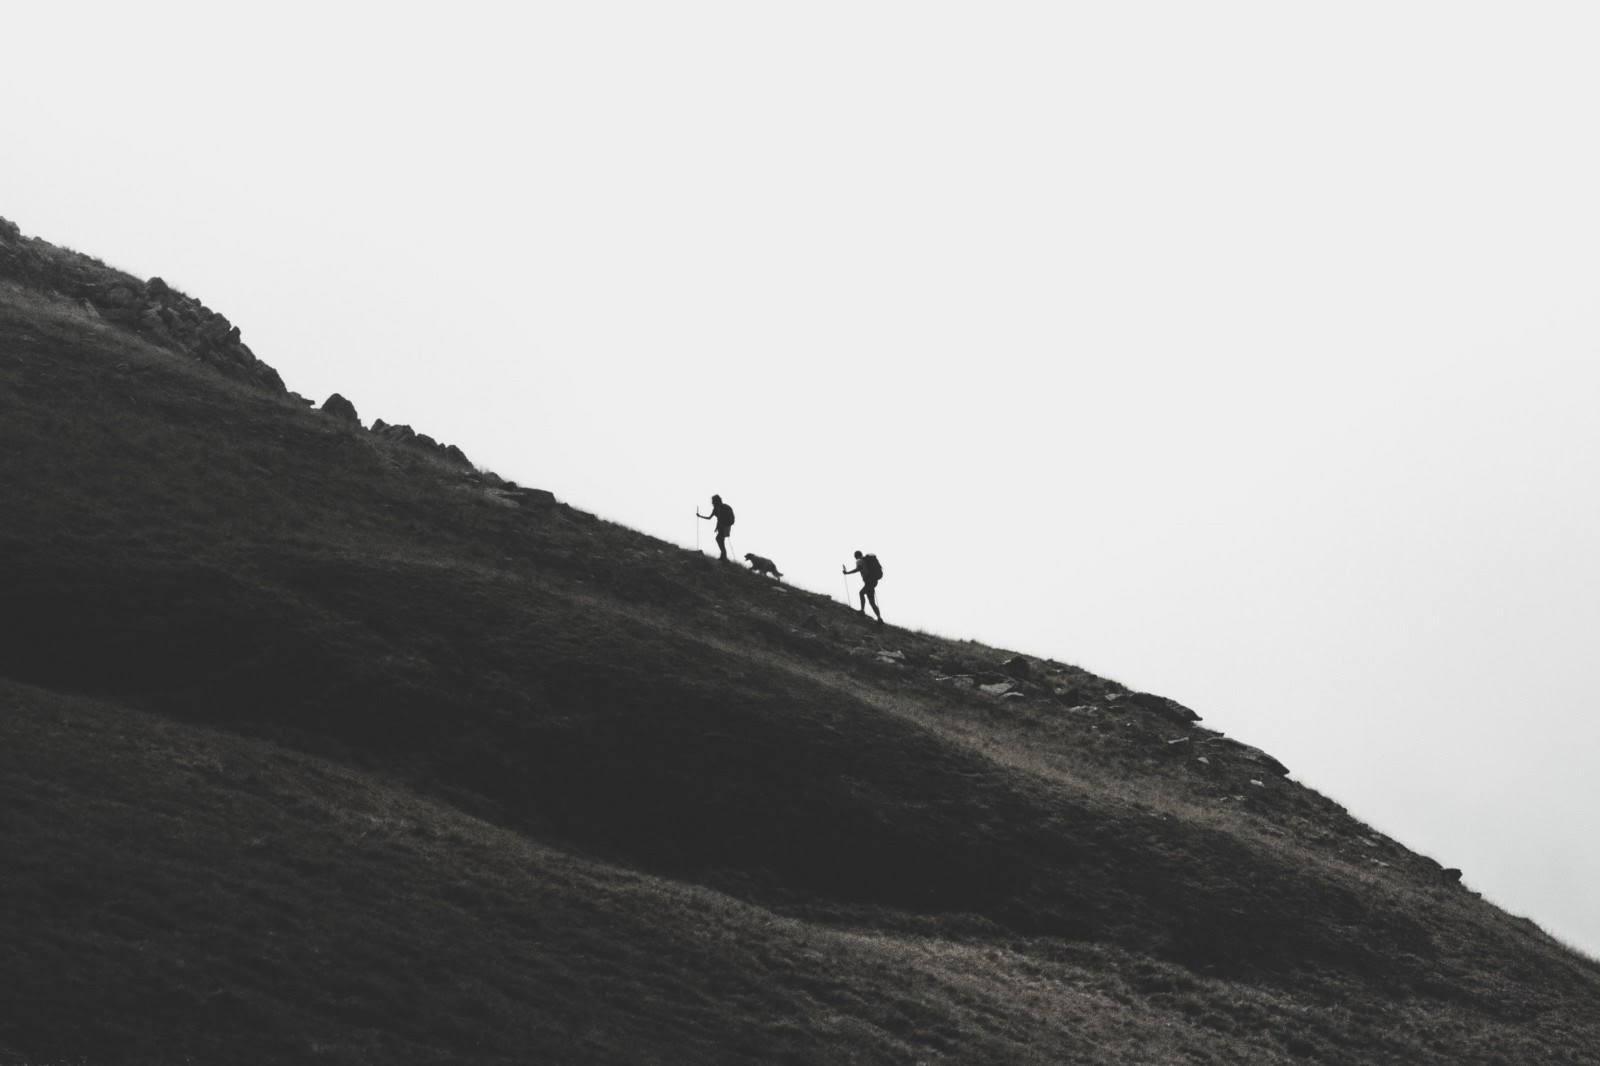 Two people and one dog climbing a steep mountain